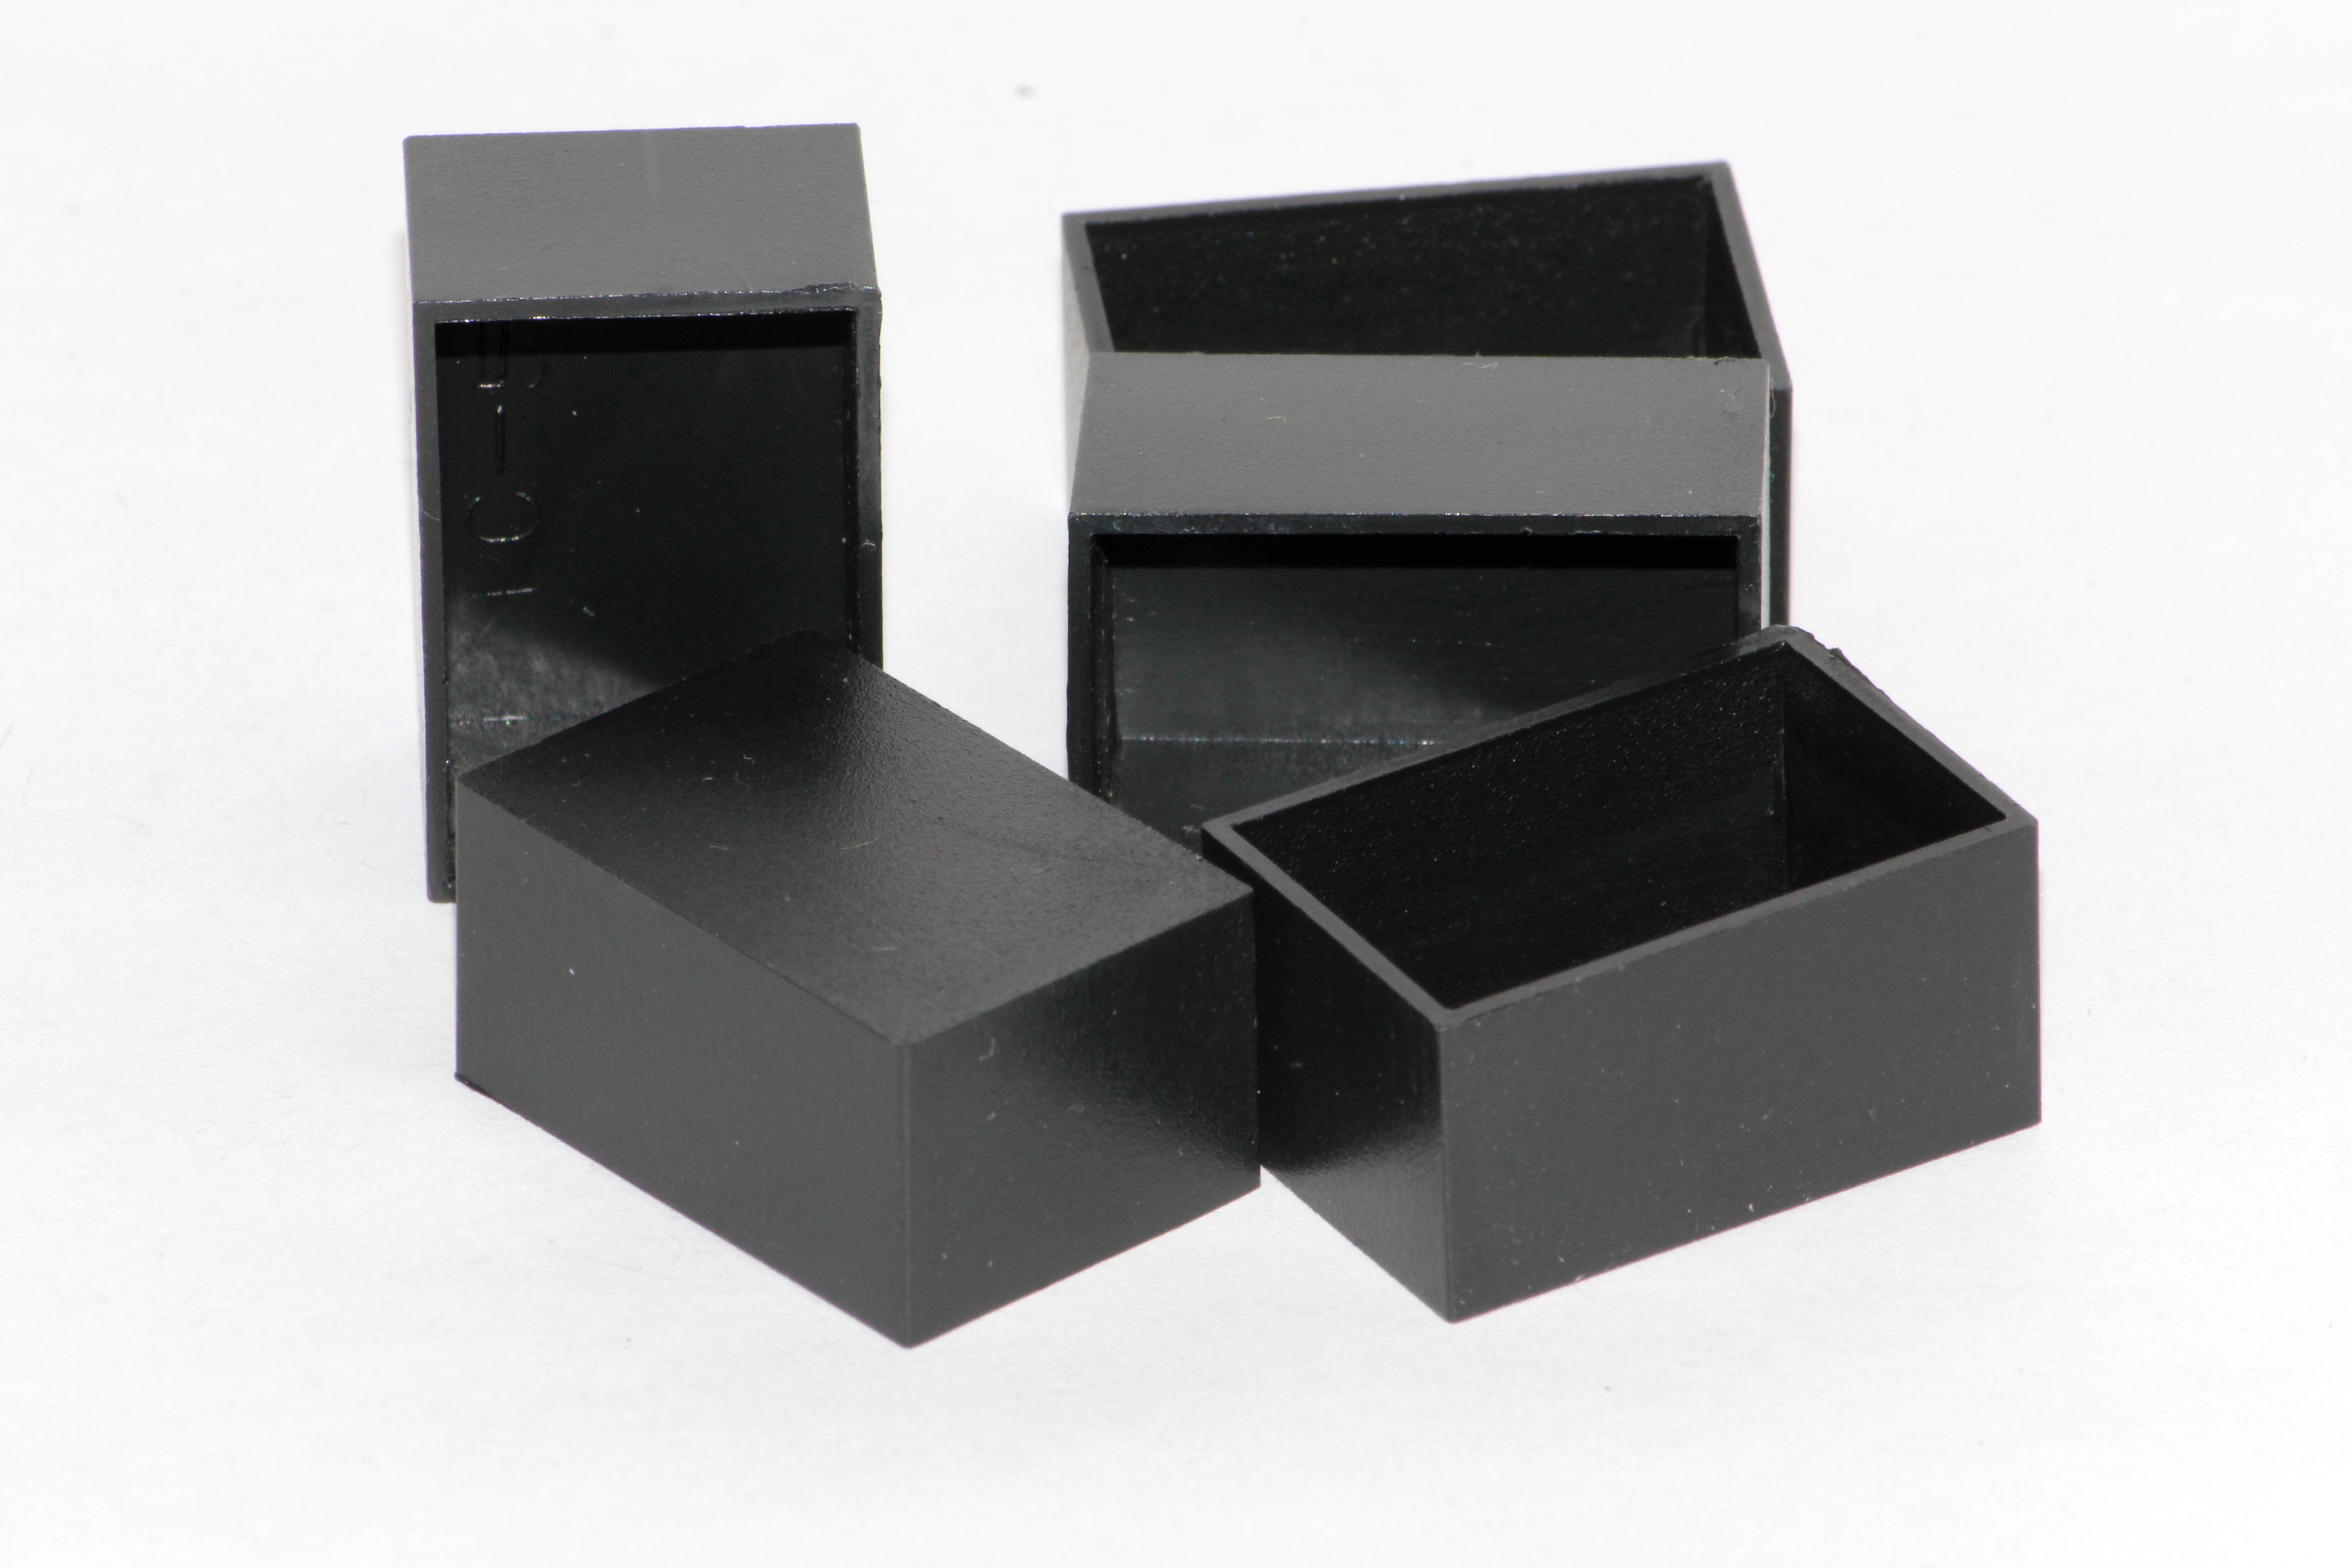 1596B102-10 - 1596 Series General Purpose ABS Plastic Potting Boxes